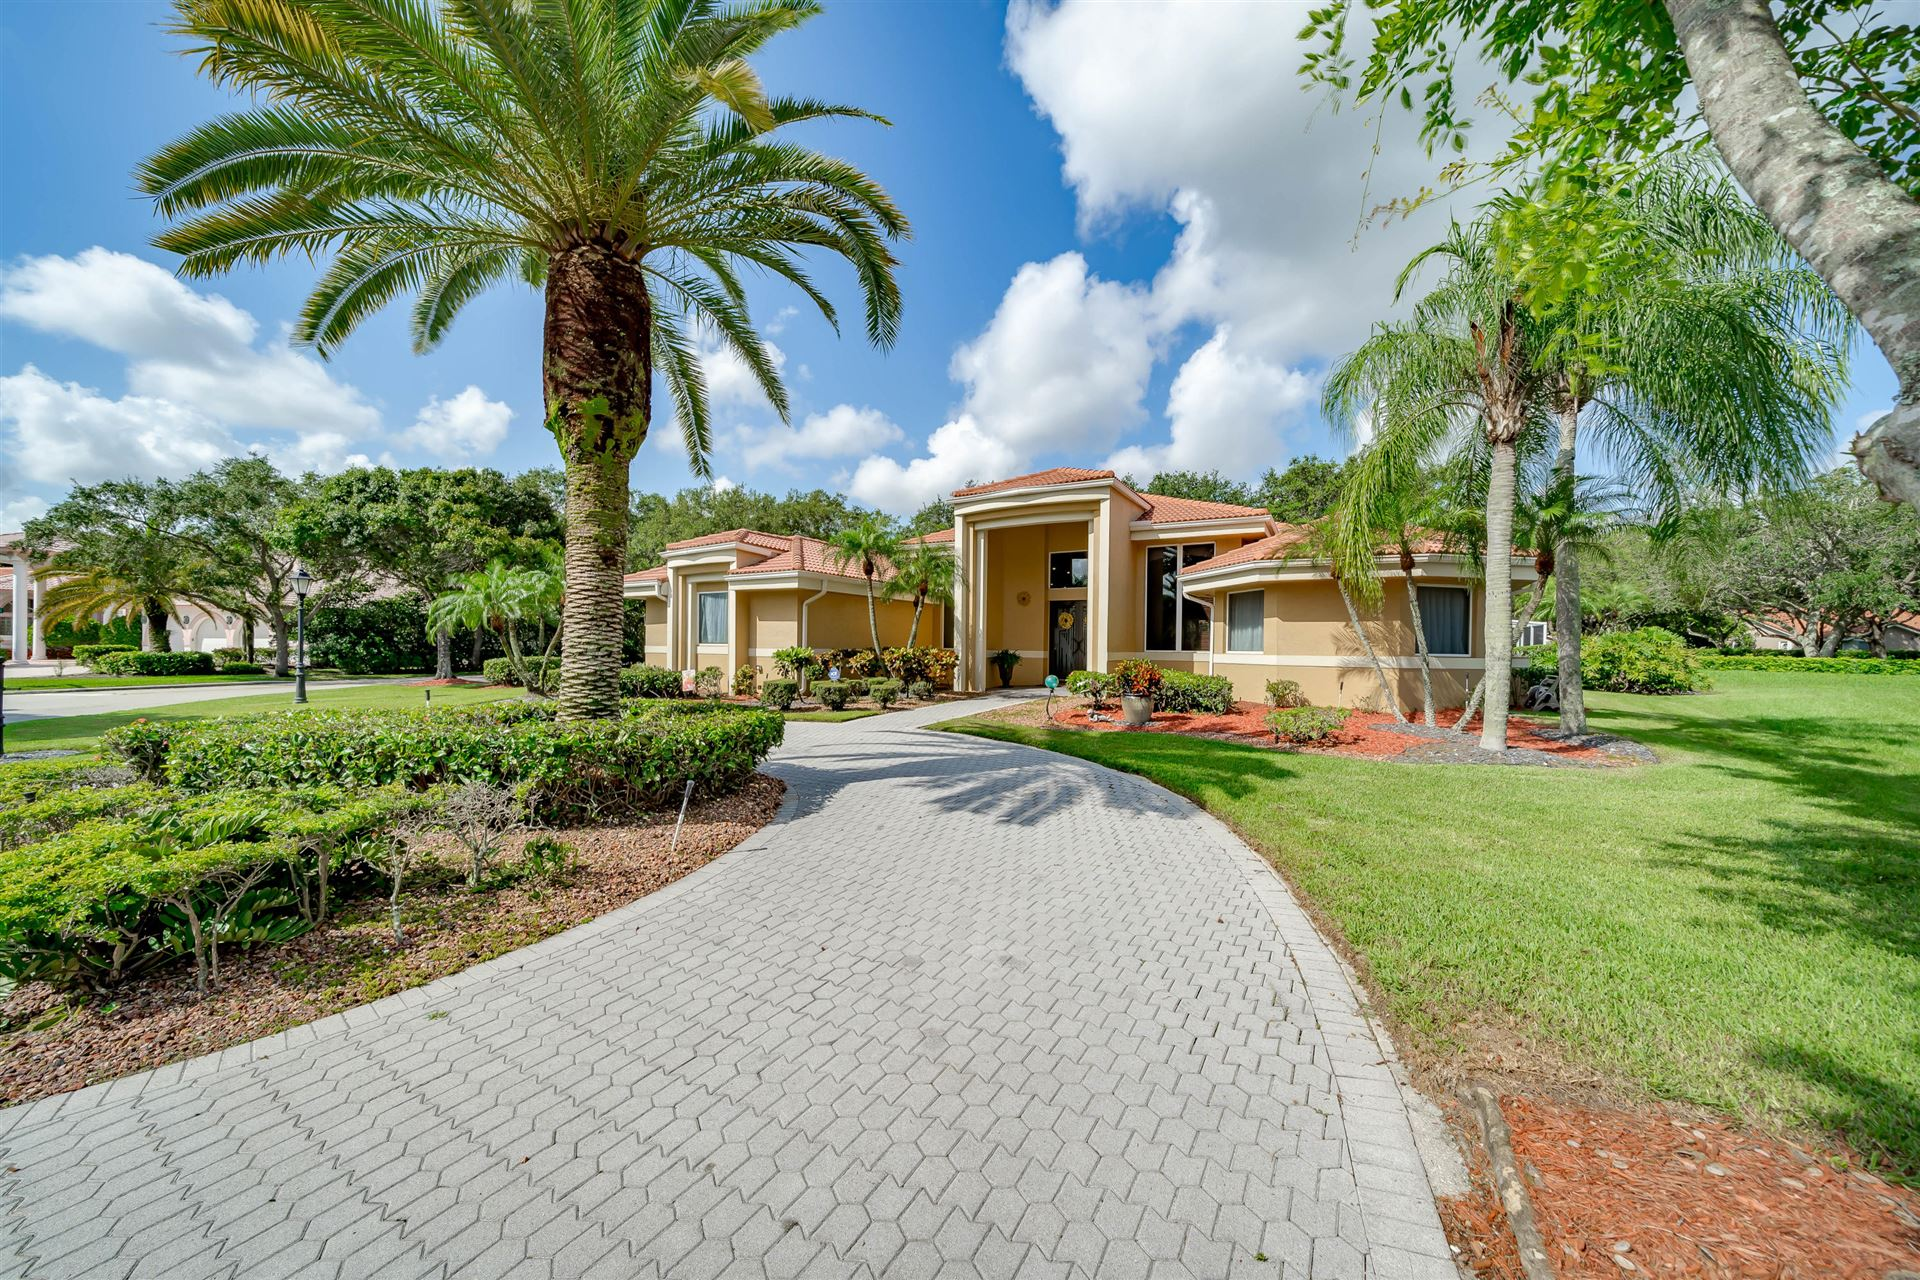 Photo of 12775 NW 15th Street, Coral Springs, FL 33071 (MLS # RX-10733628)